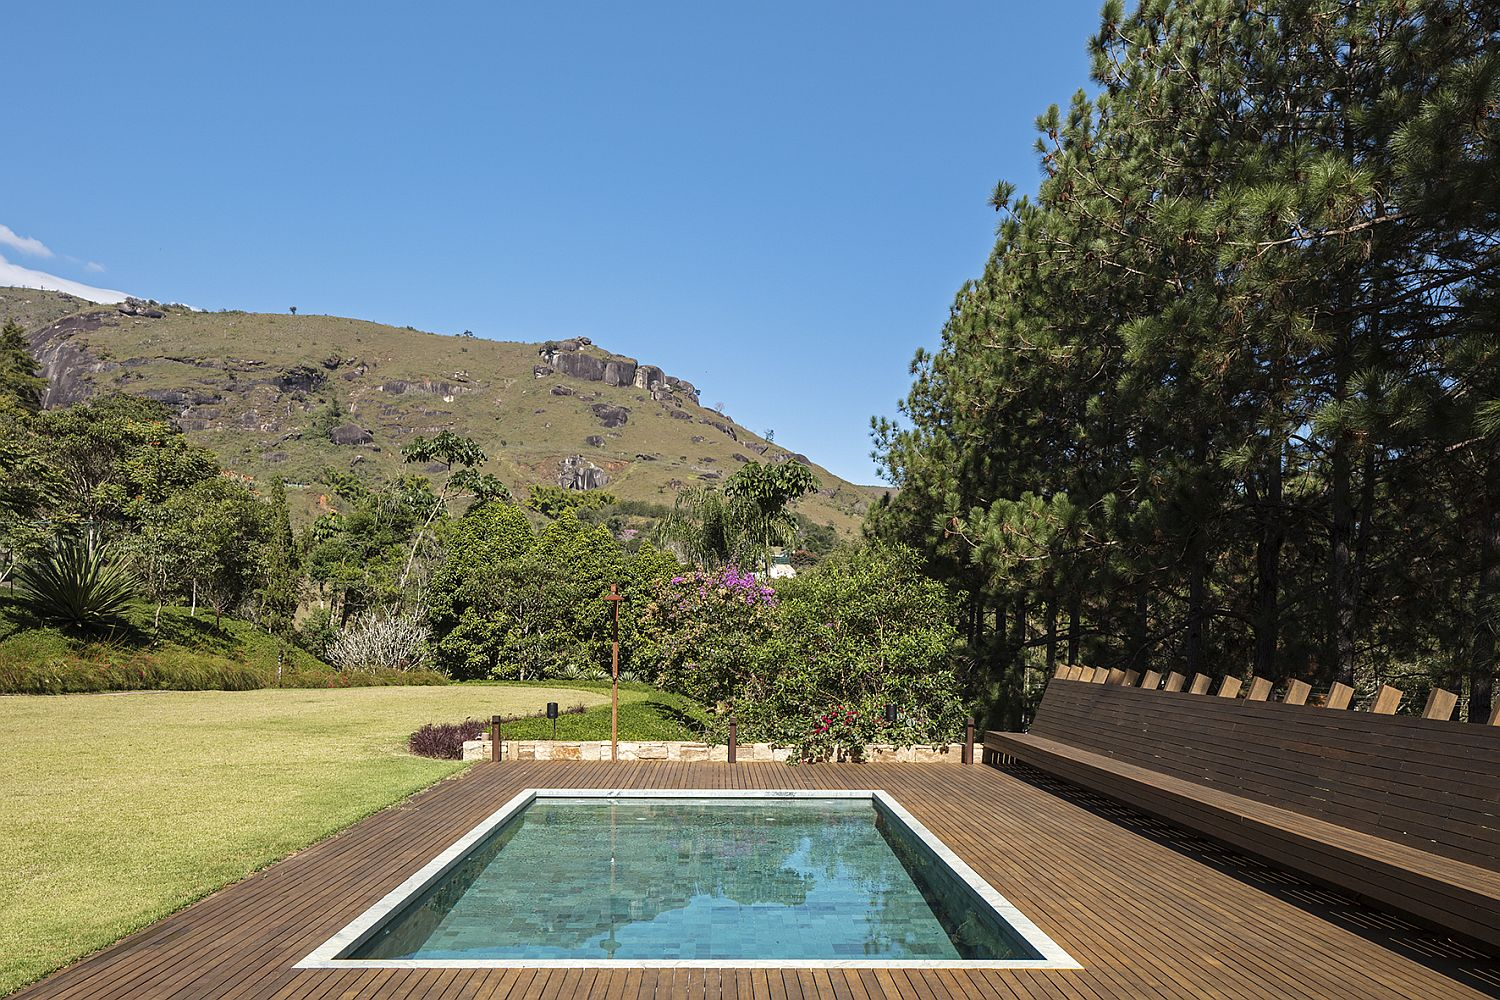 Pool with Hijau stone and wooden deck around it